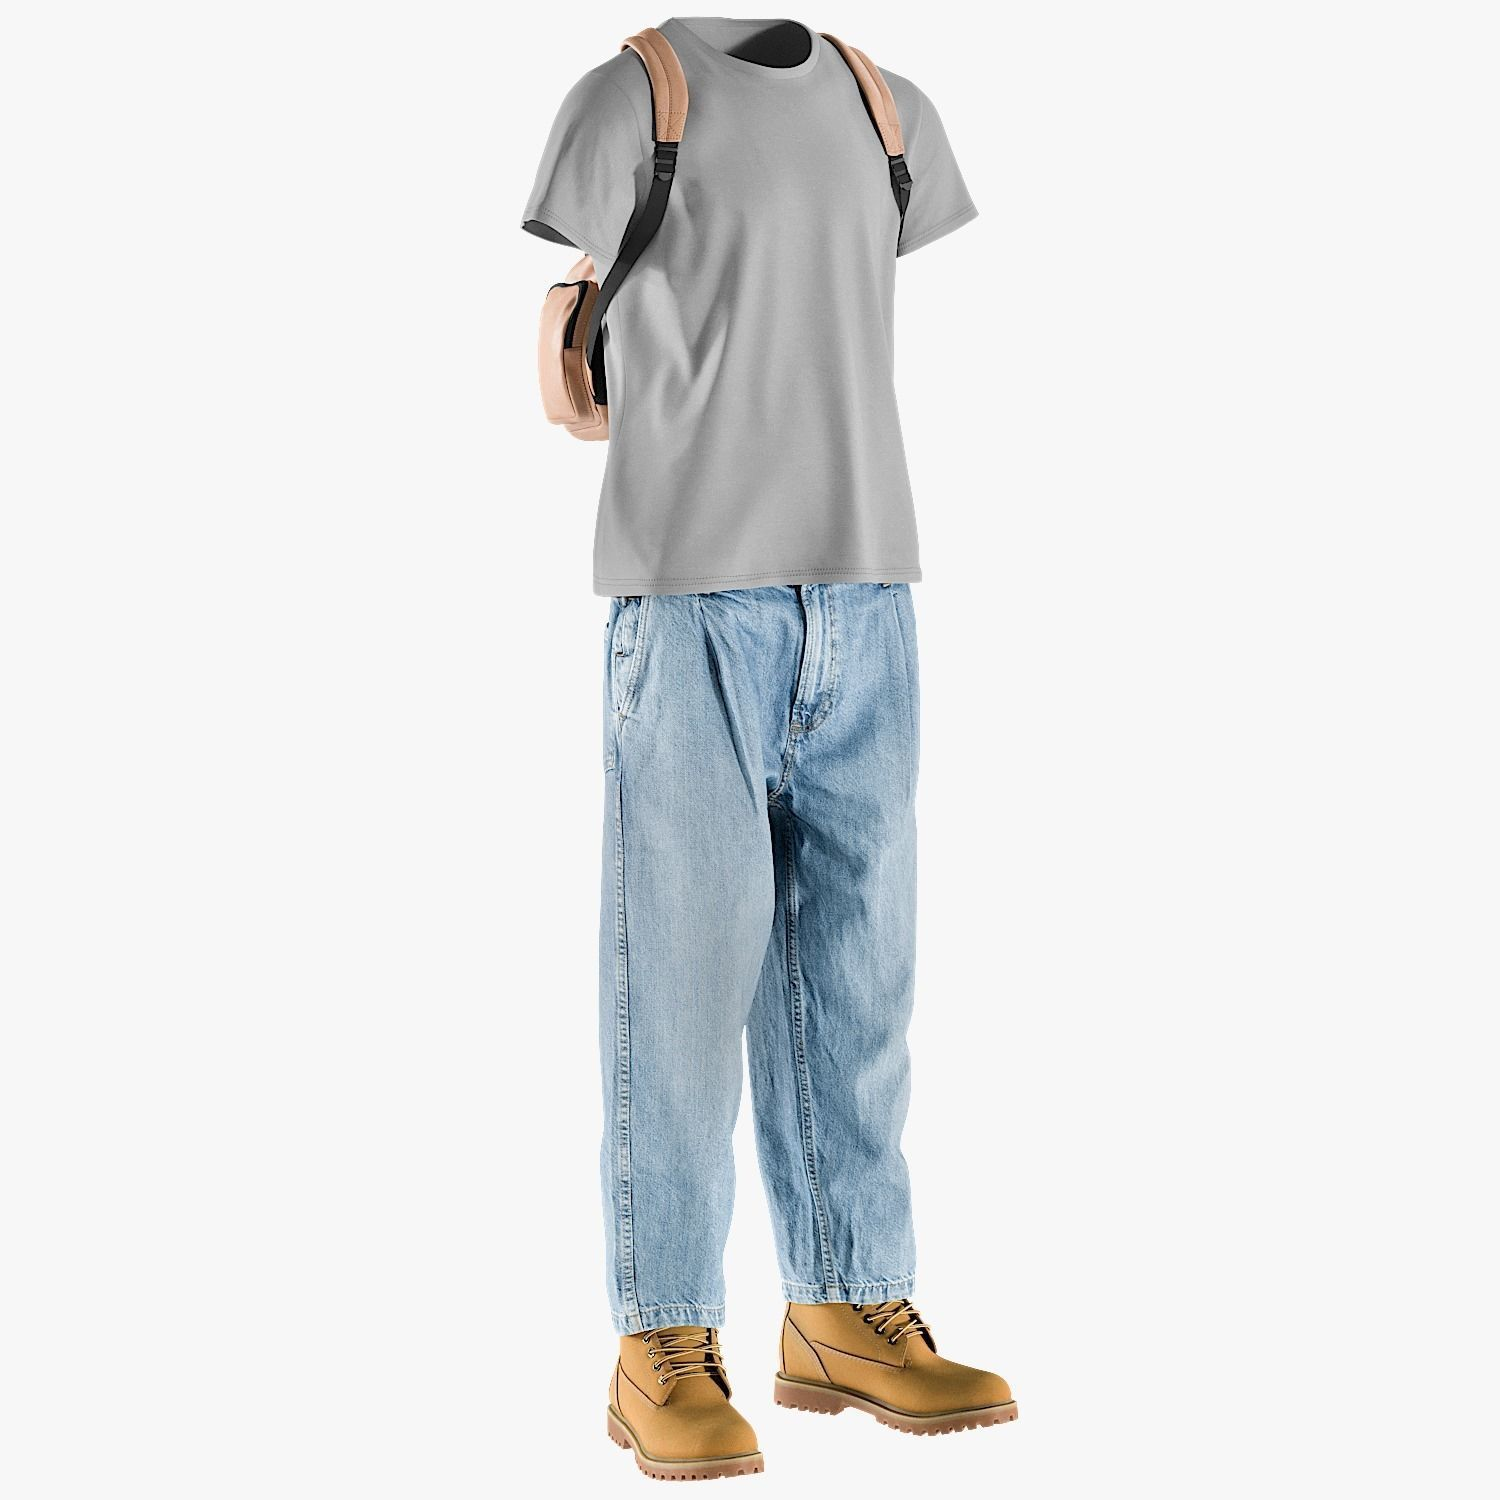 Mens Jeans with Tshirt Boots Backpack 10